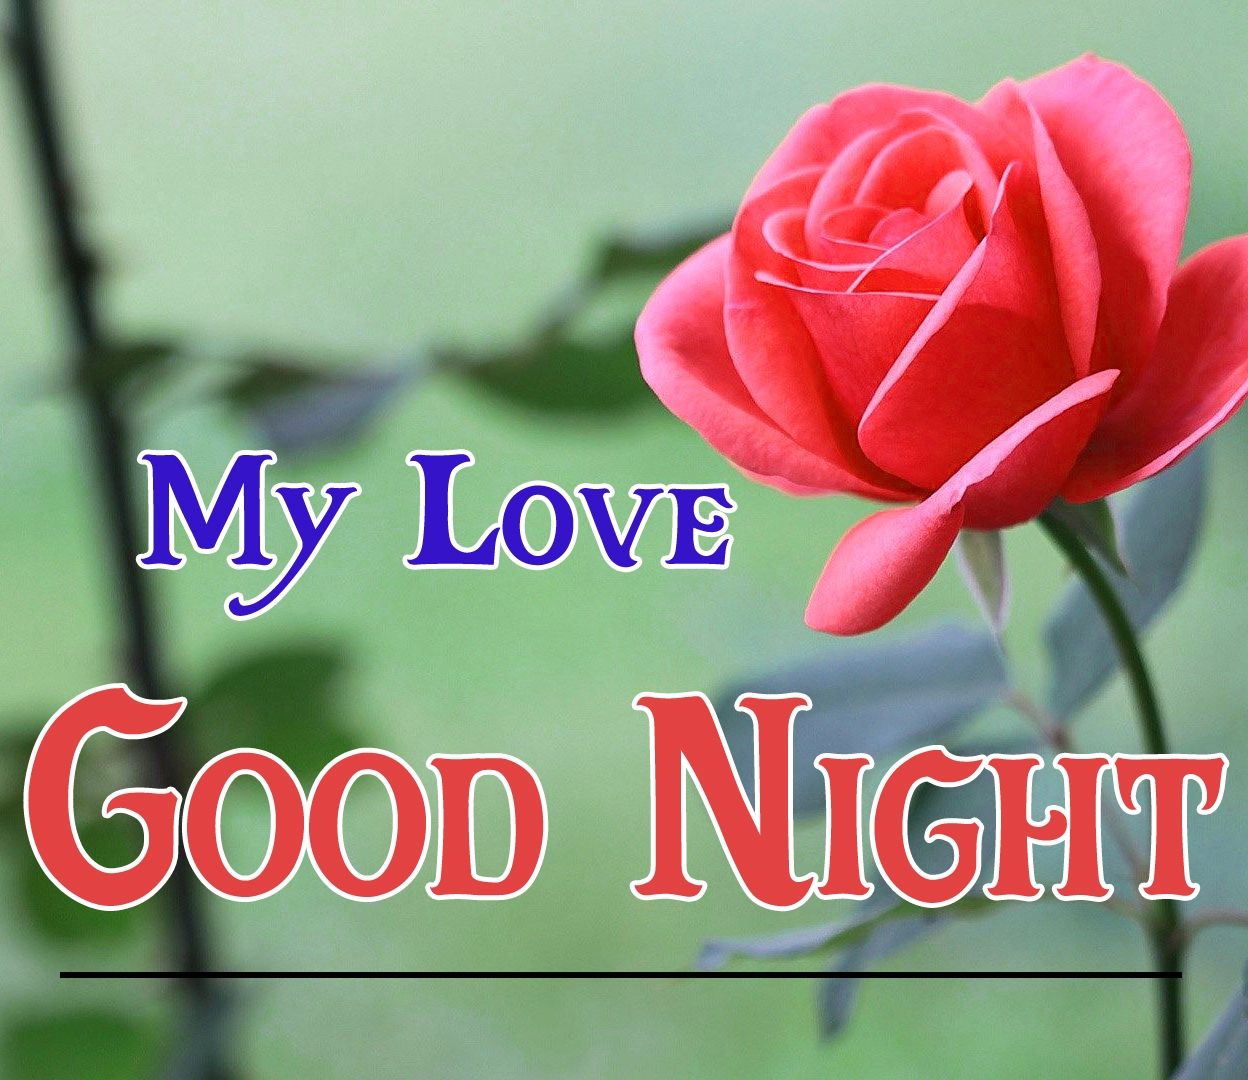 Good night wallpaper hd 80 1